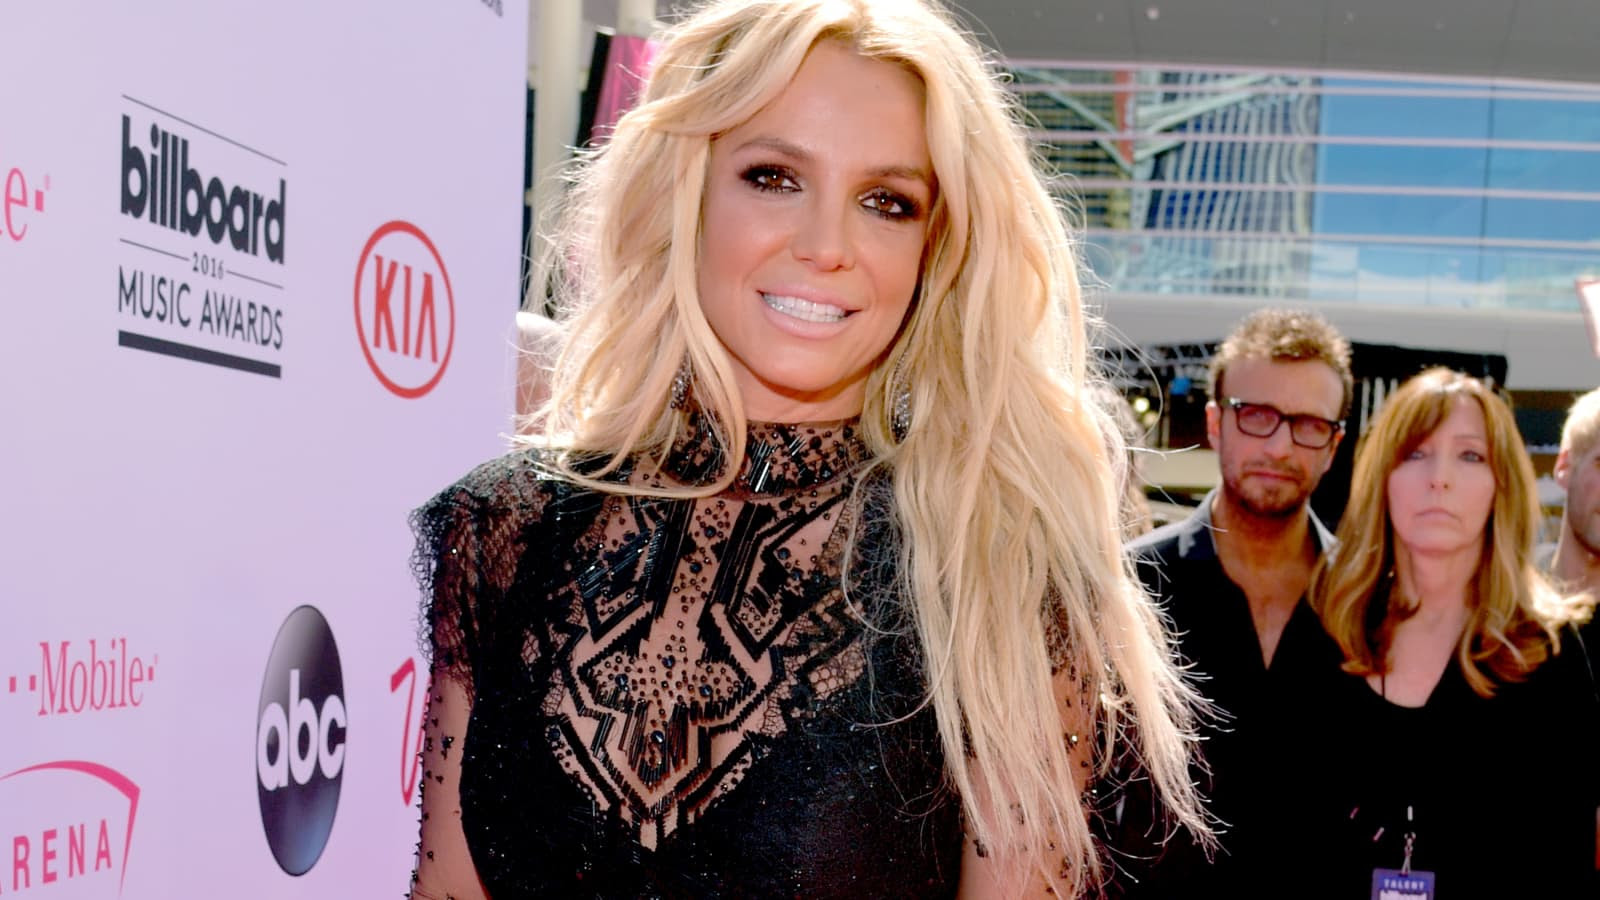 You don't have to be Britney Spears to get a prenuptial agreement